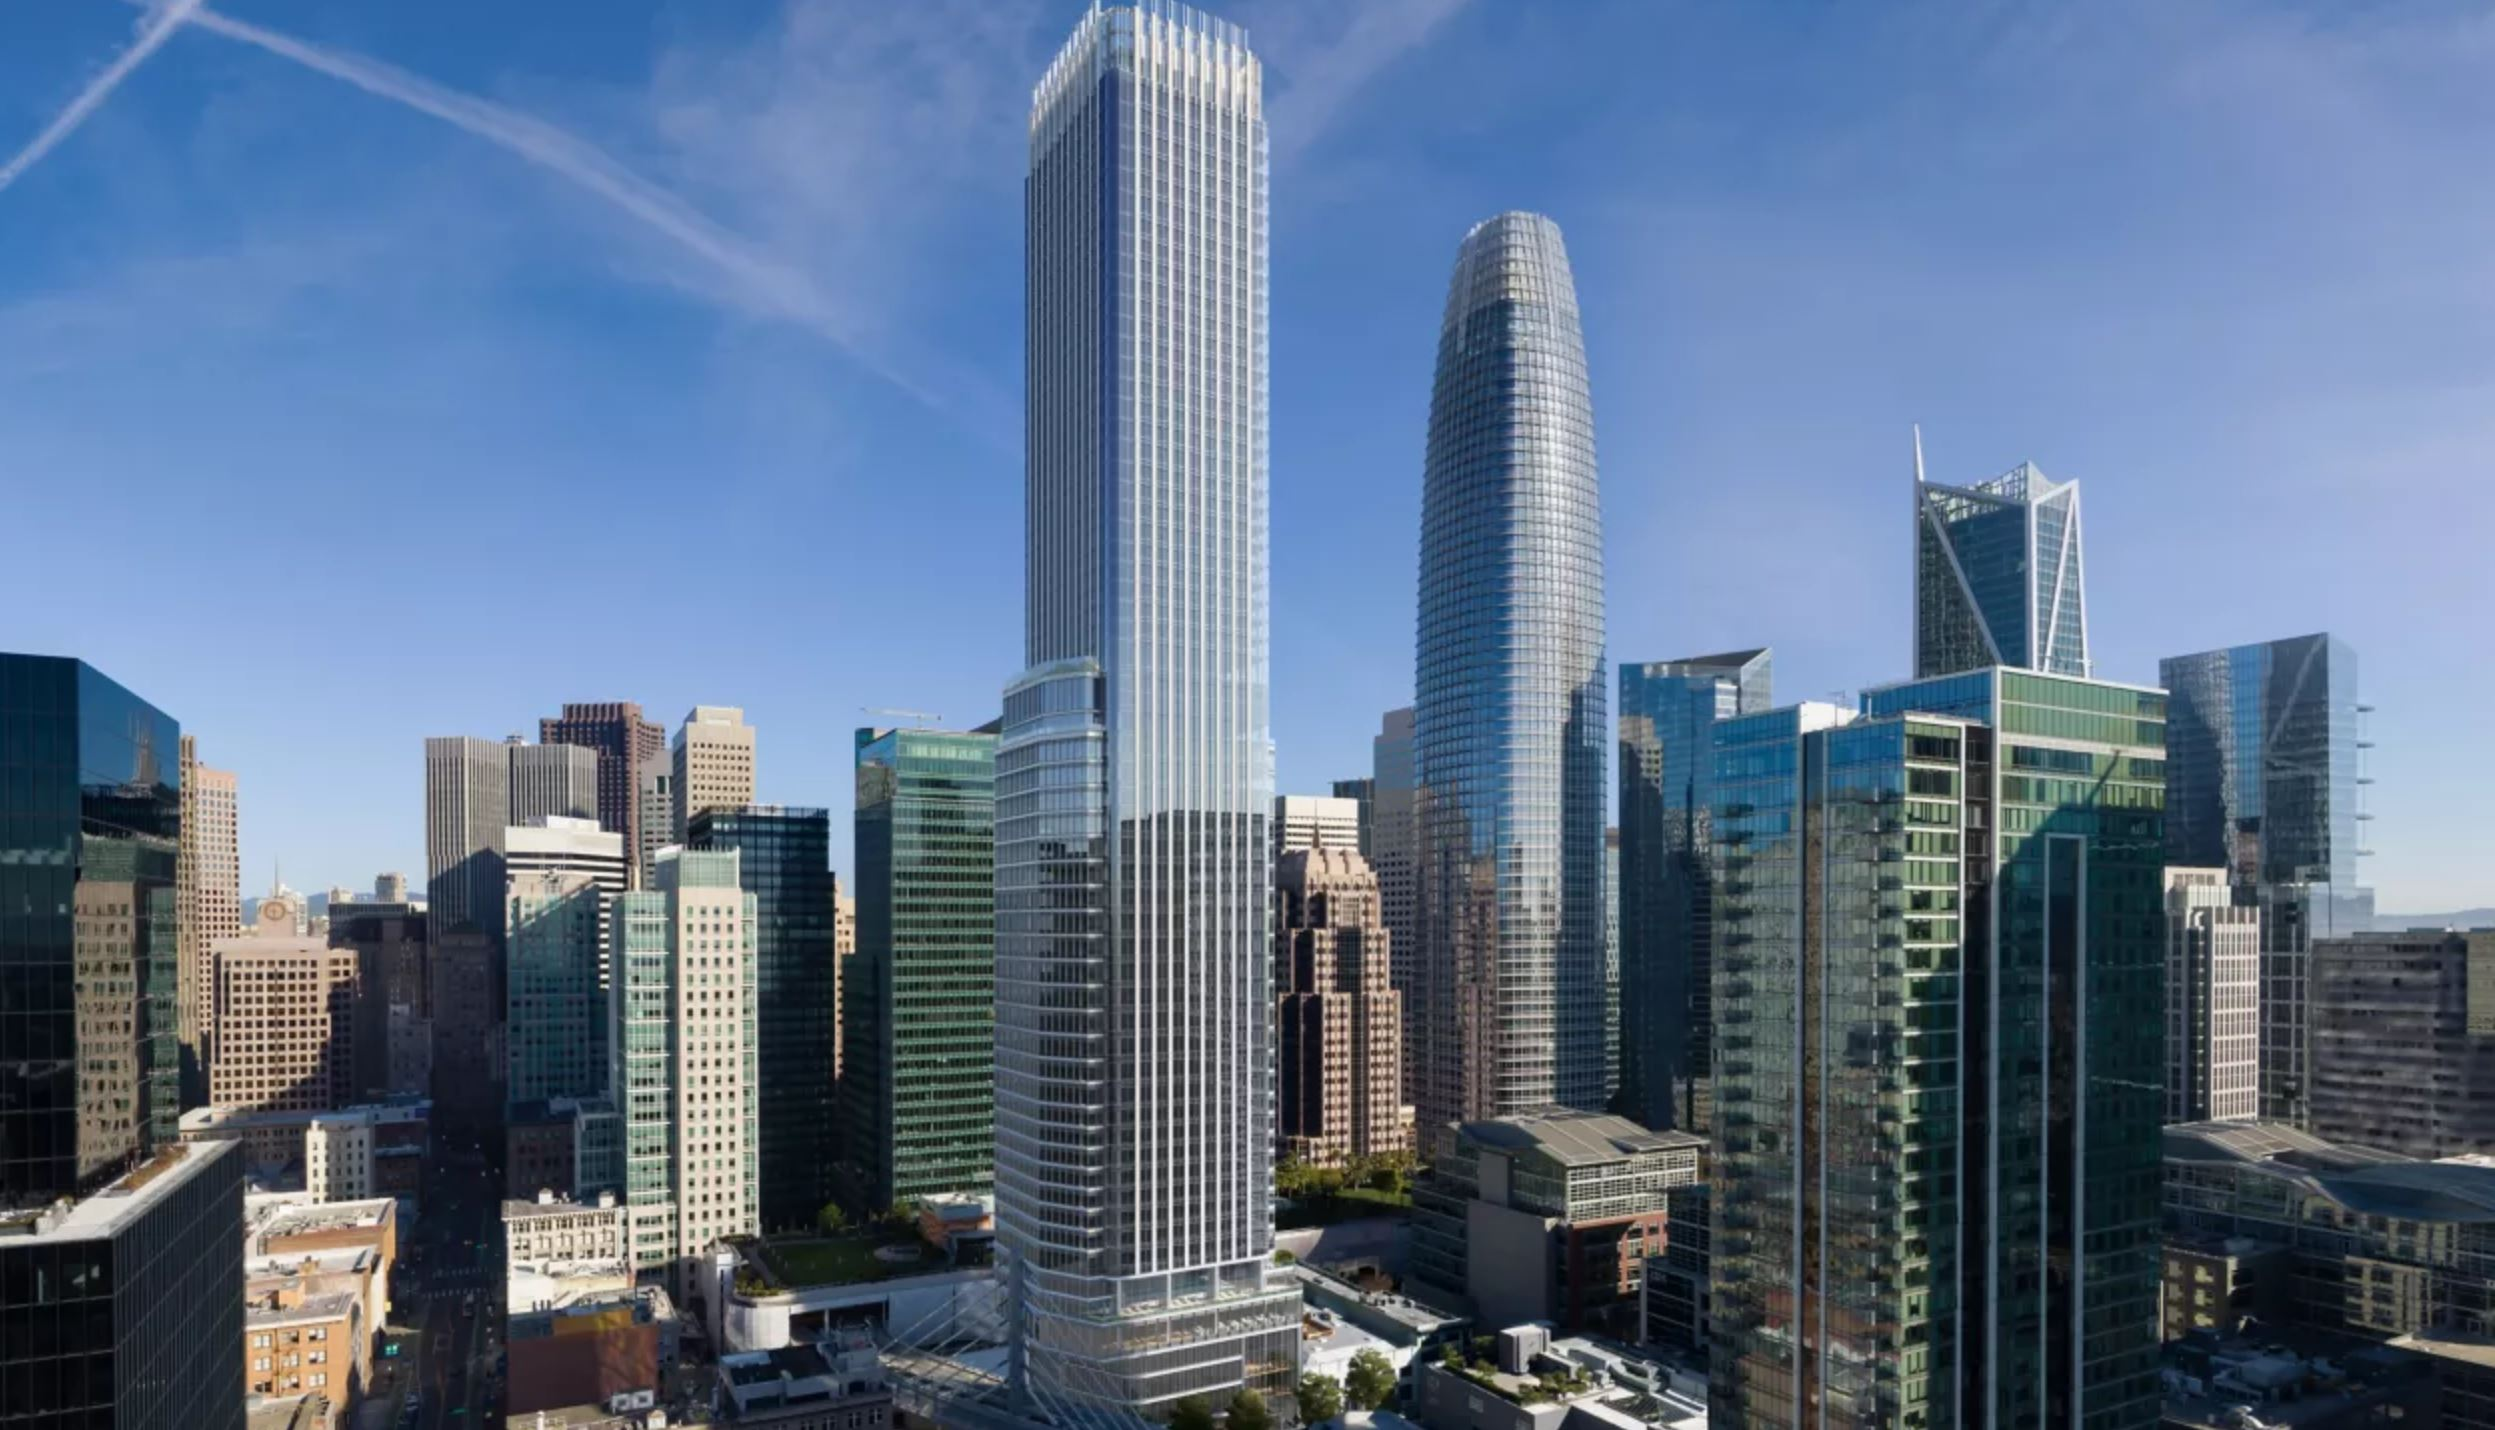 Rosewood Hotels & Resorts to open in San Francisco 2026